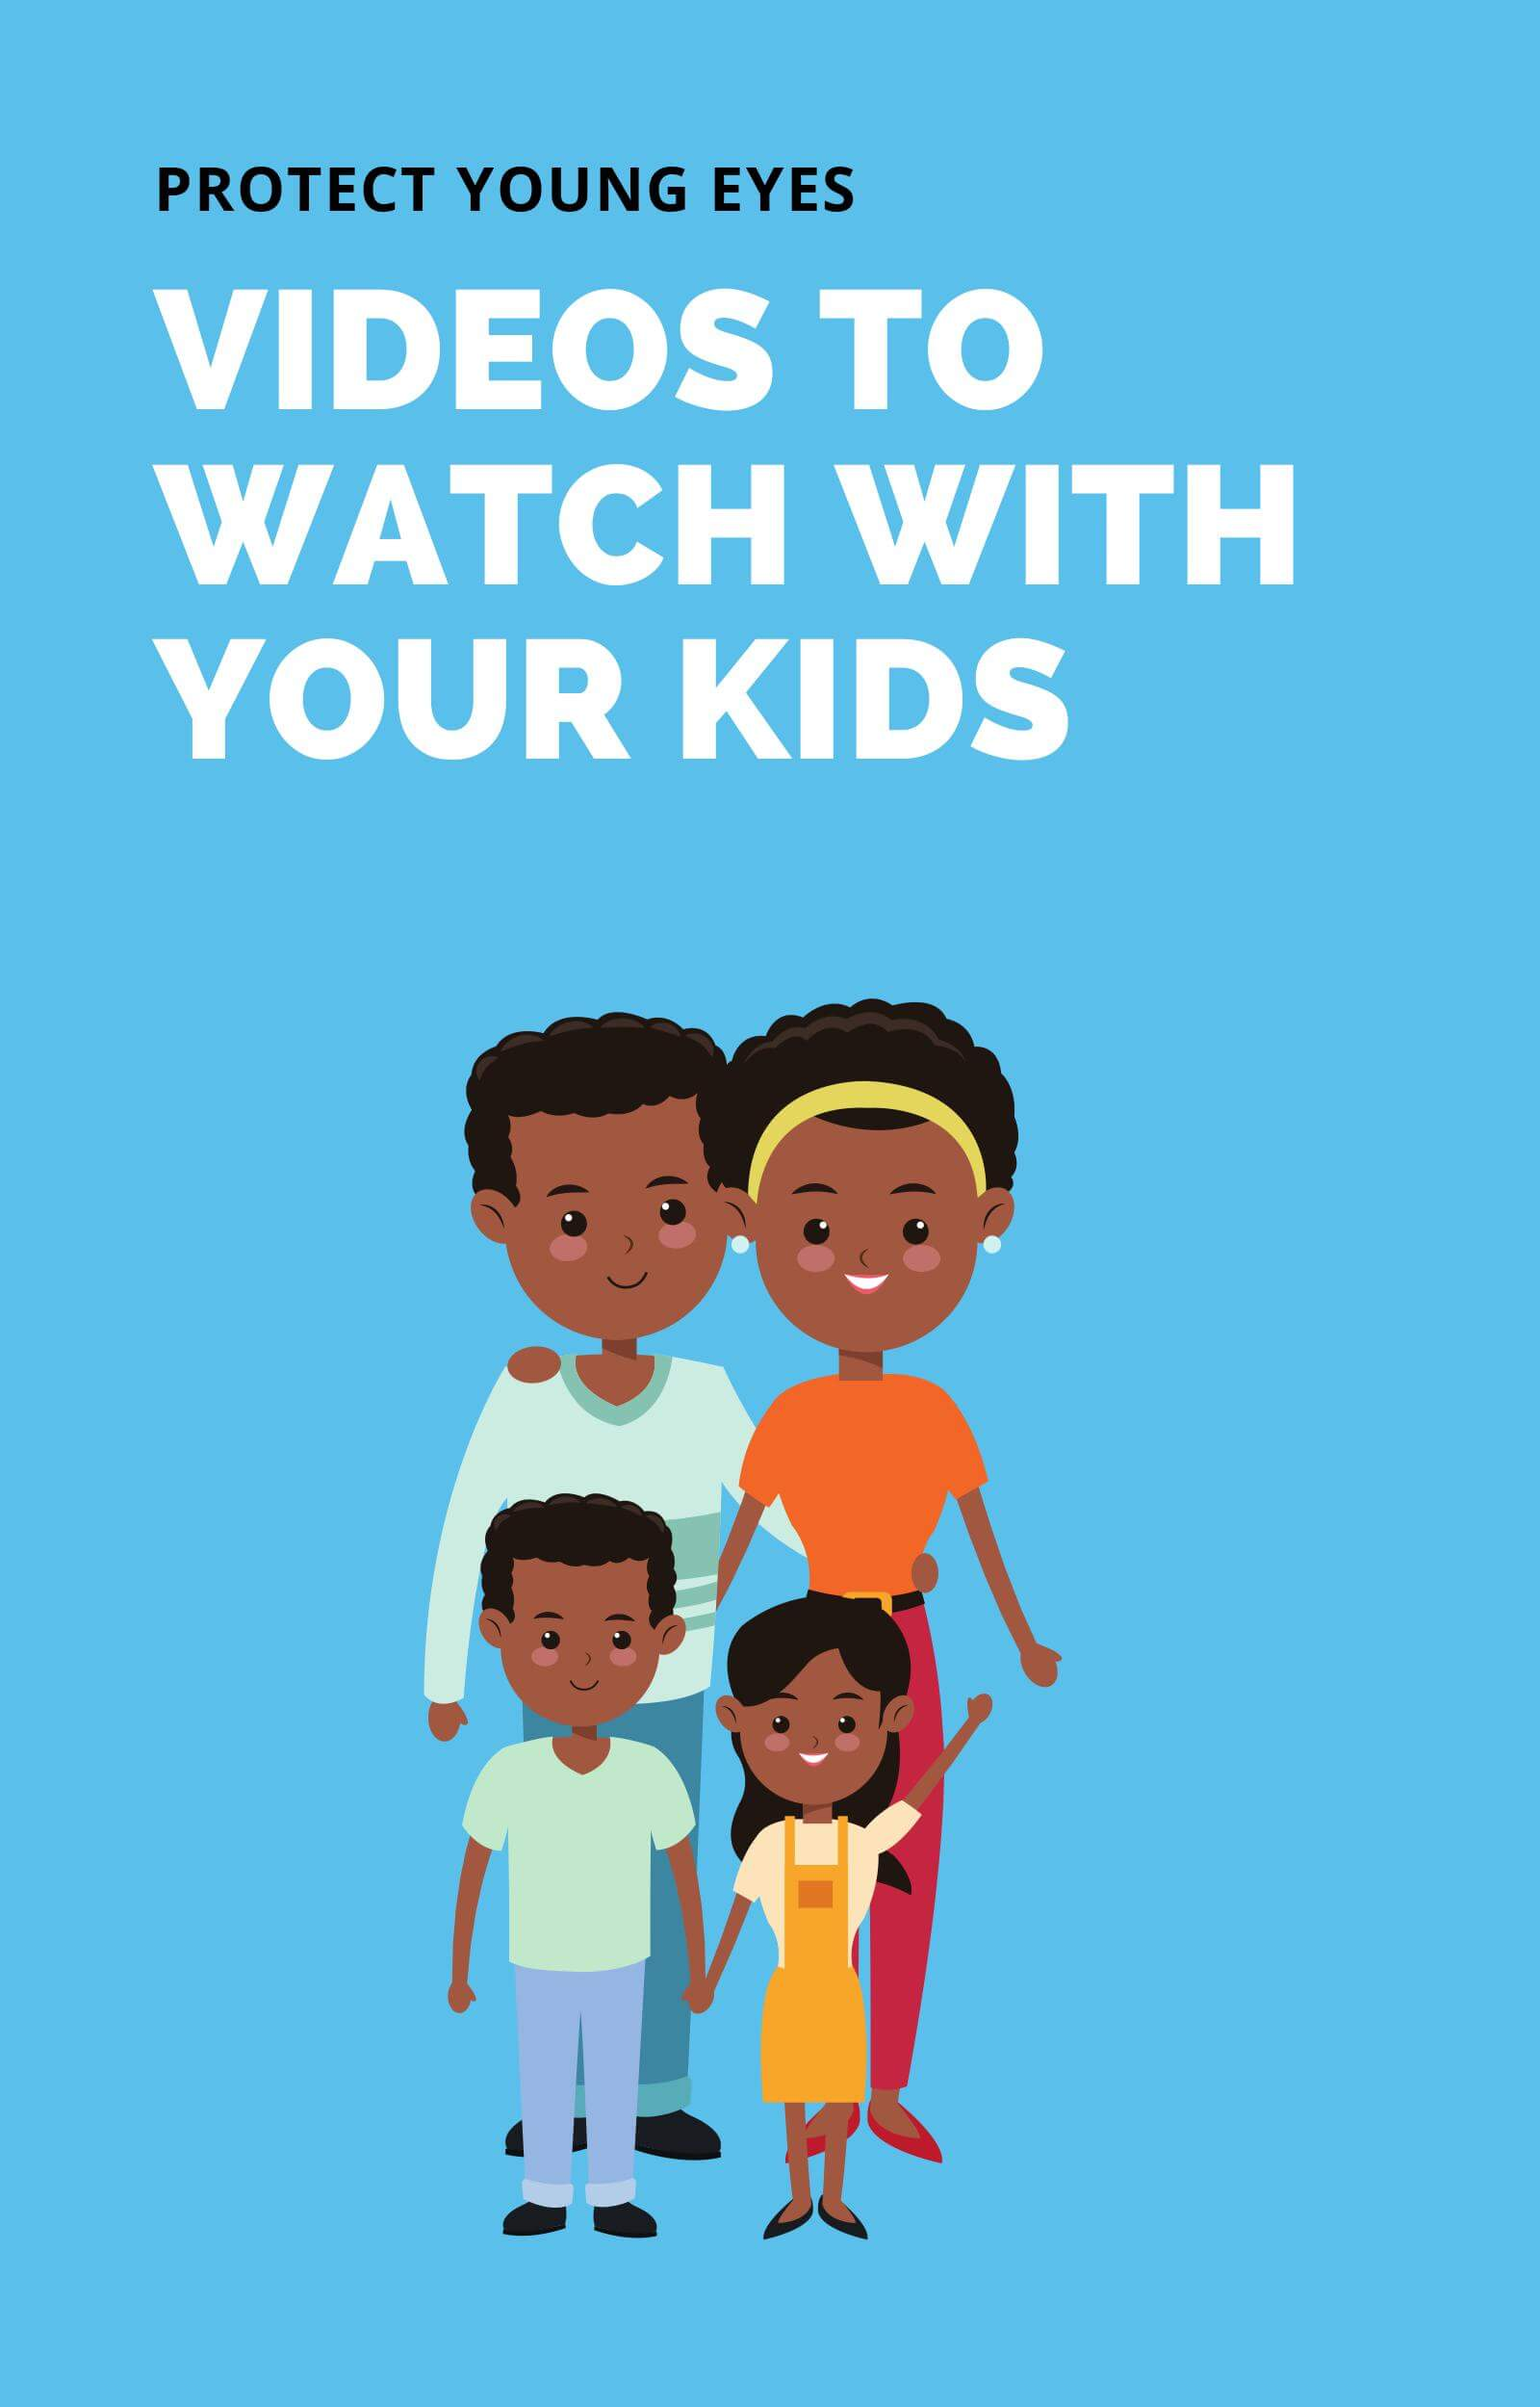 Vidoes to Watch with Kids - PYE